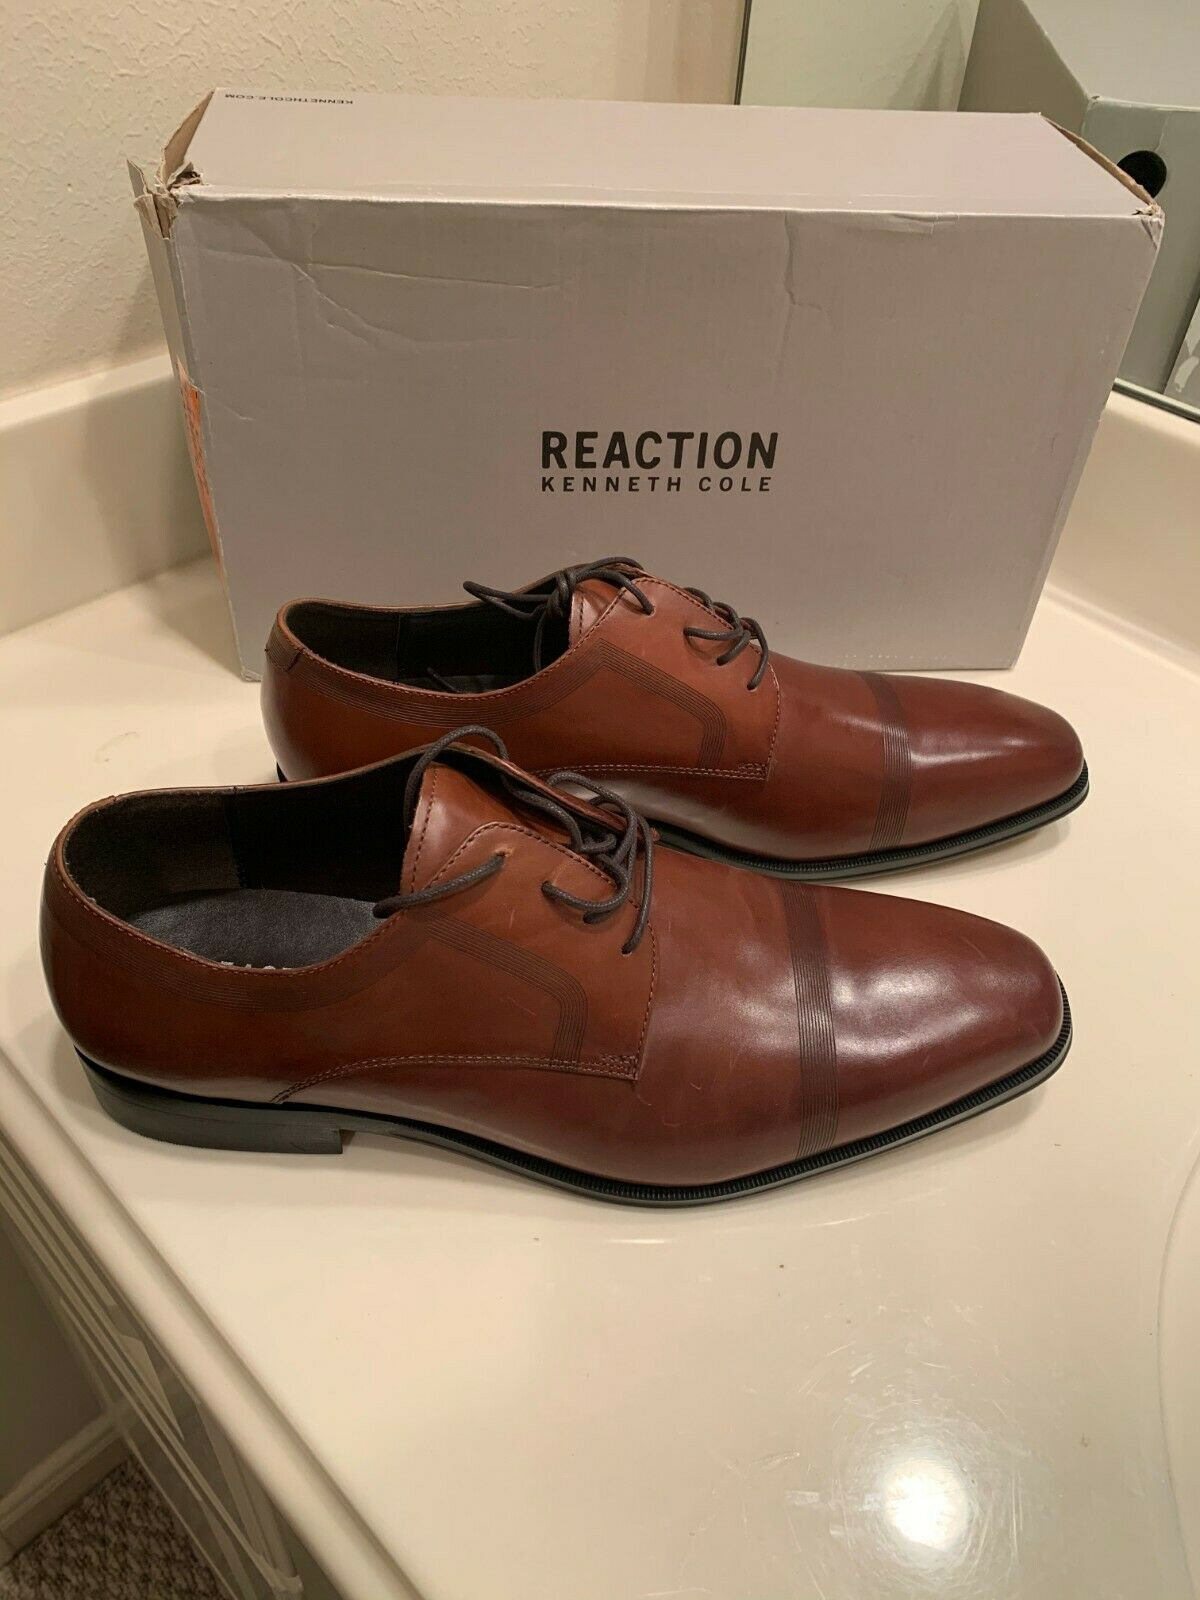 NWT MSRP REACTION KENNETH COLE PURE HEARTED COGNAC LACE UPS SIZE 11M